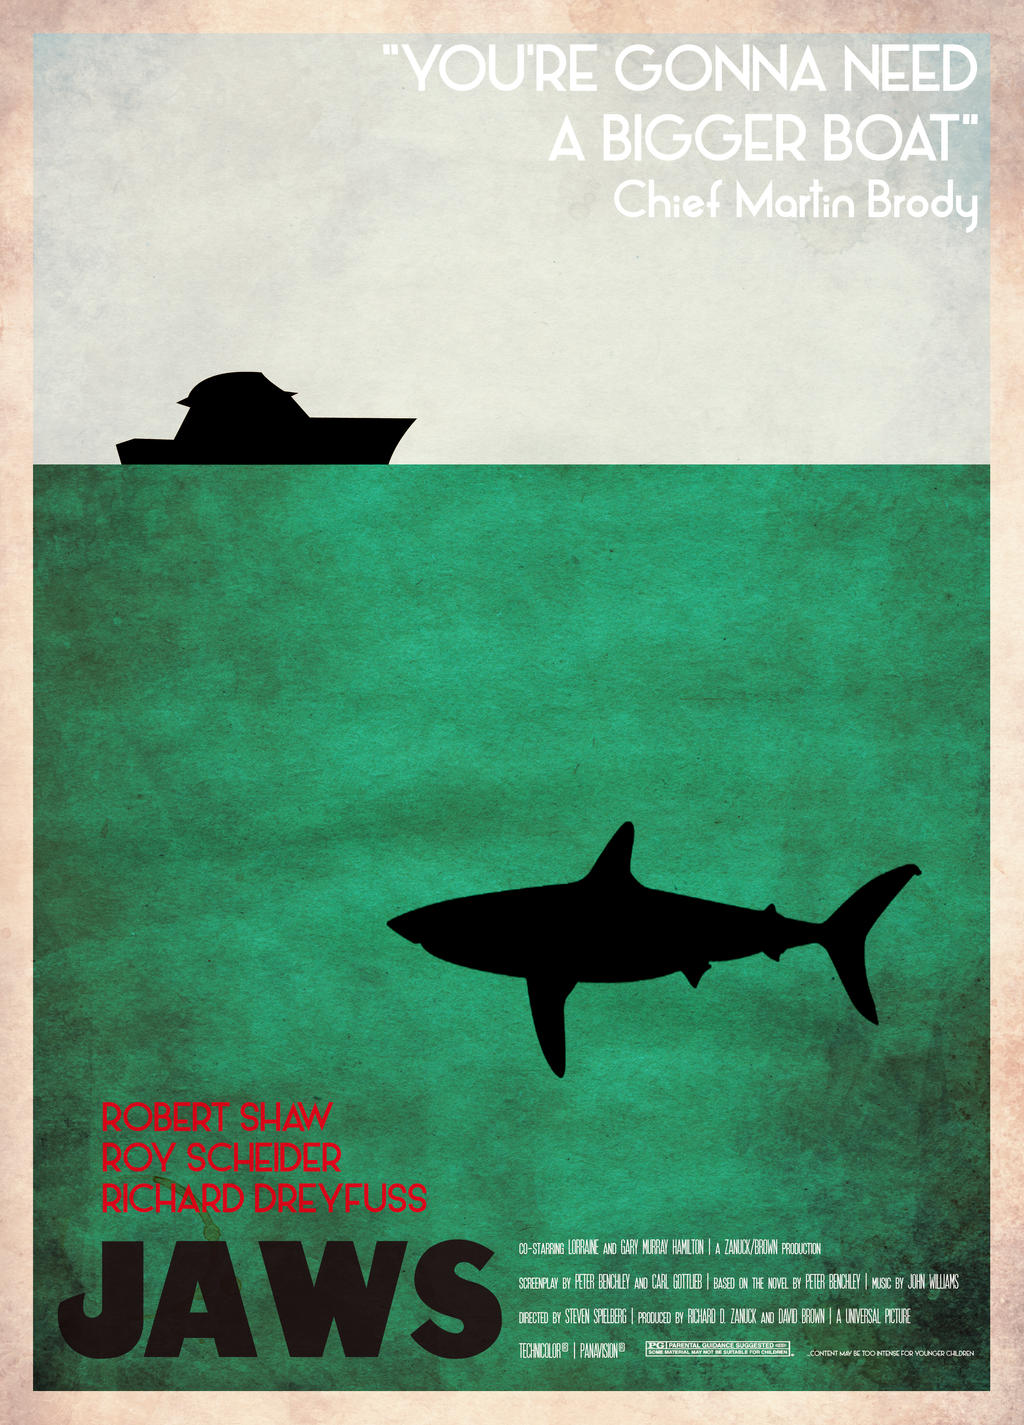 Retro Jaws Movie Poster by Muska23 on DeviantArt